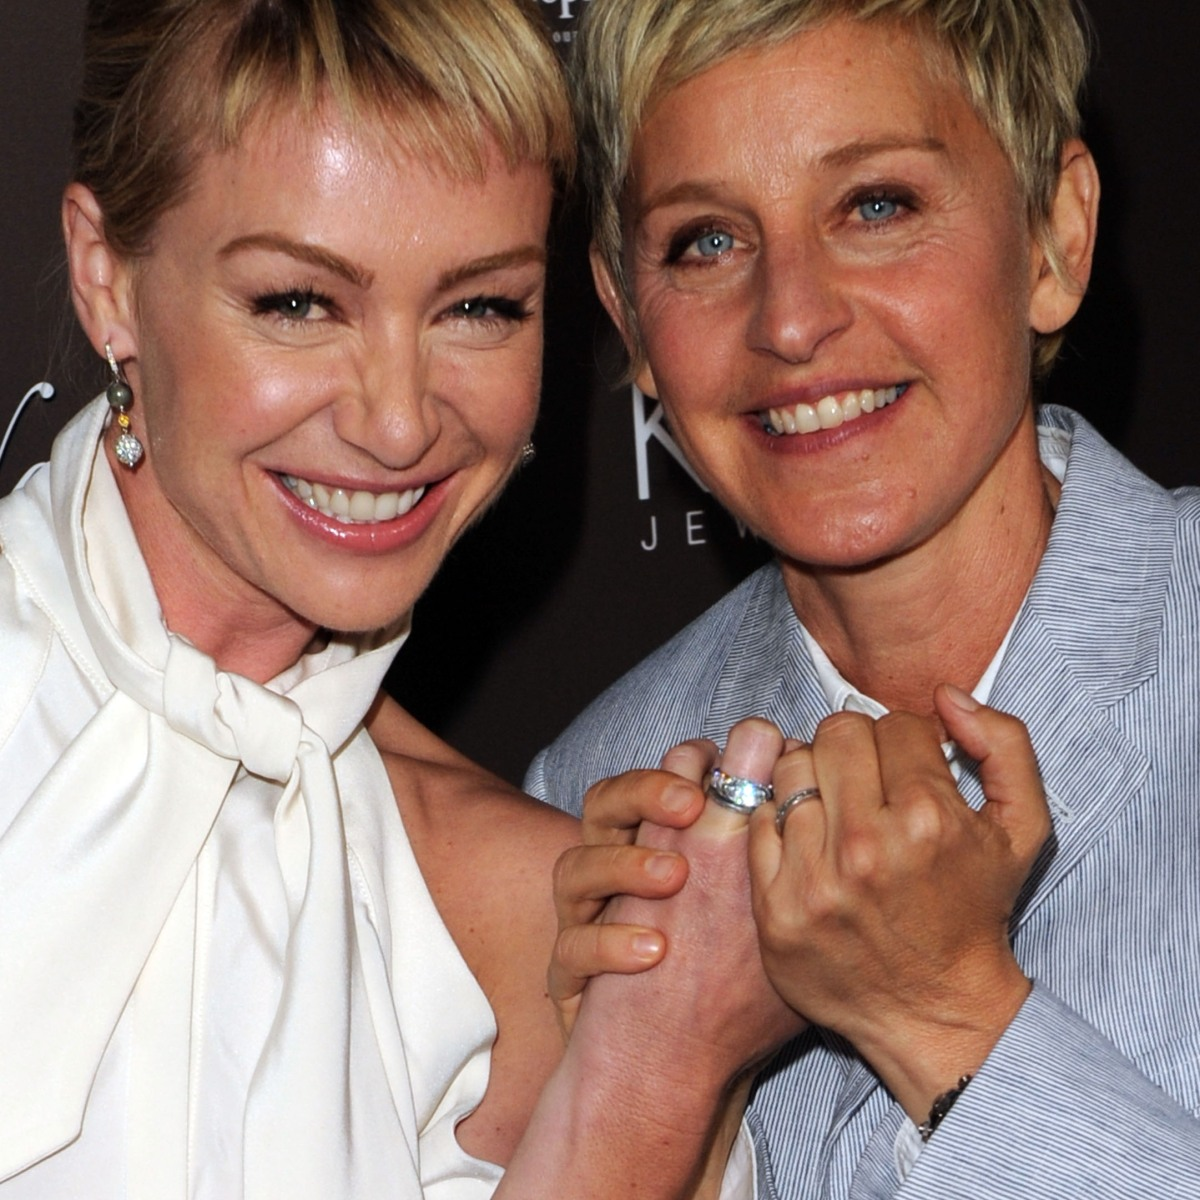 Ellen Degeneres And Portia De Rossi Are Headed For Divorce Find Out What Ended Their Relationship